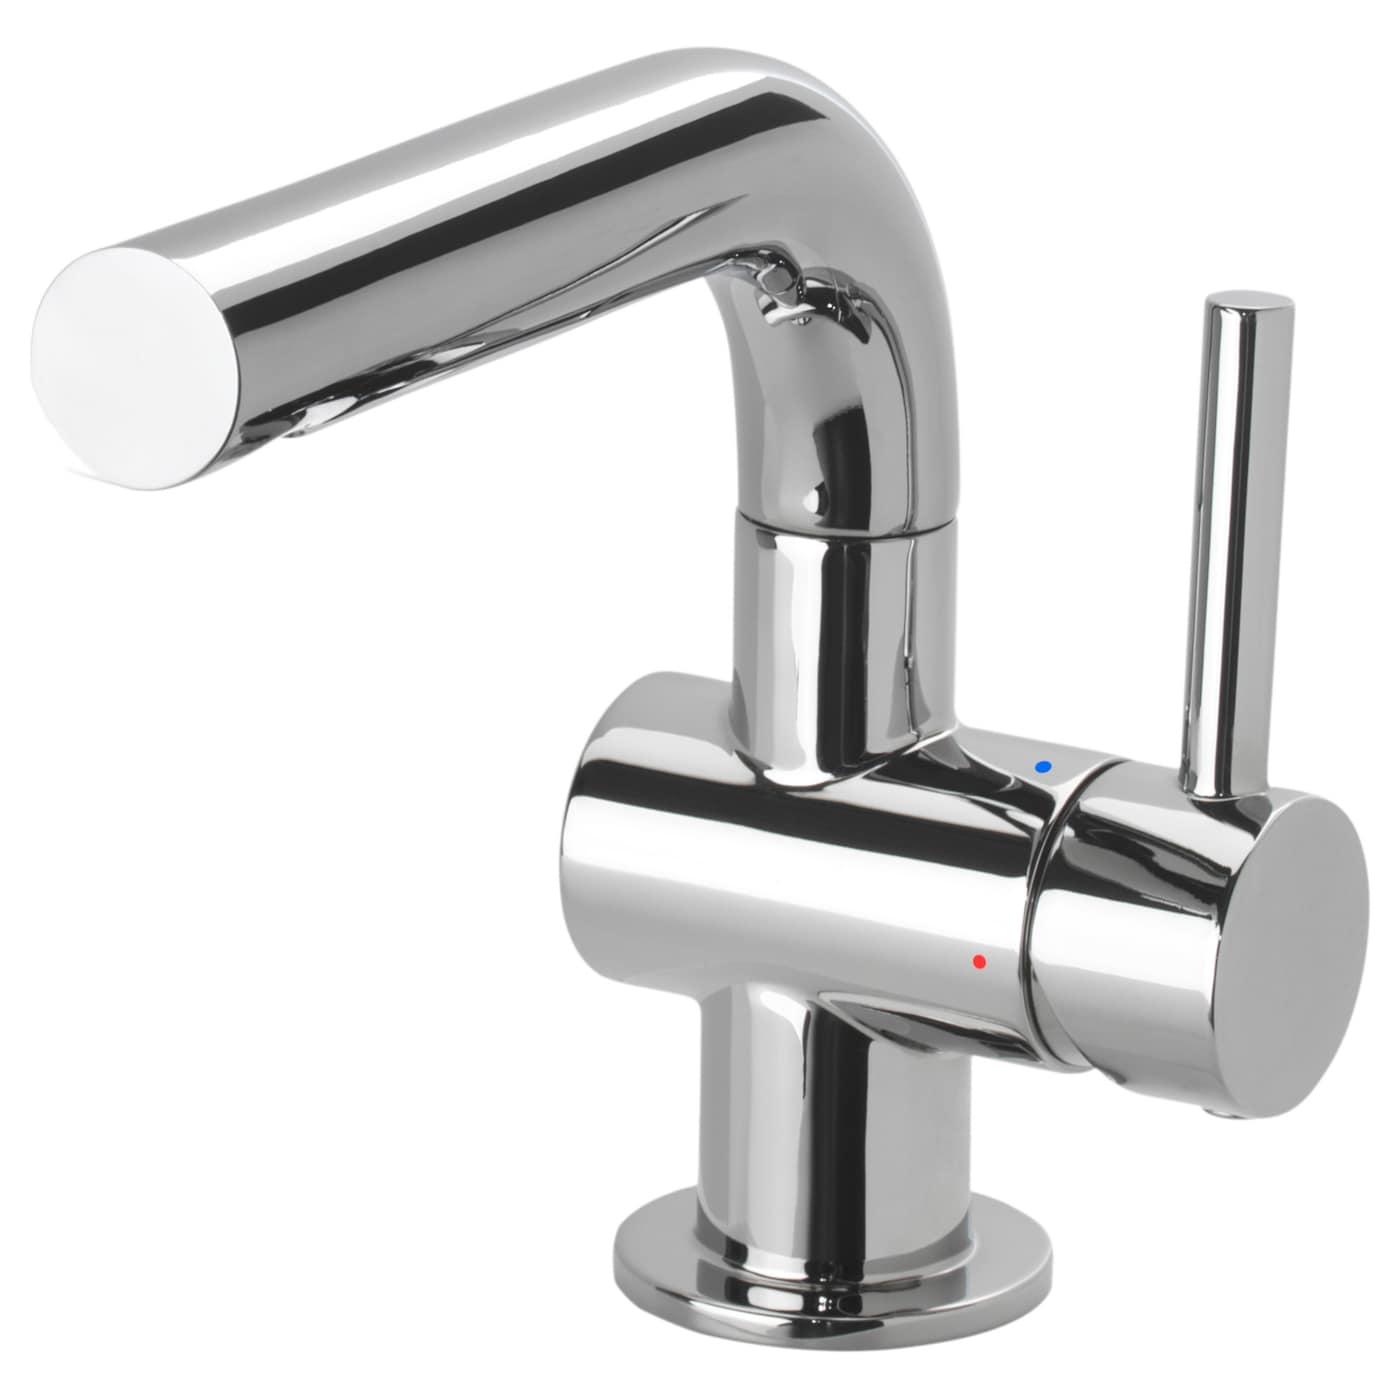 IKEA SVENSKÄR wash-basin mixer tap with strainer